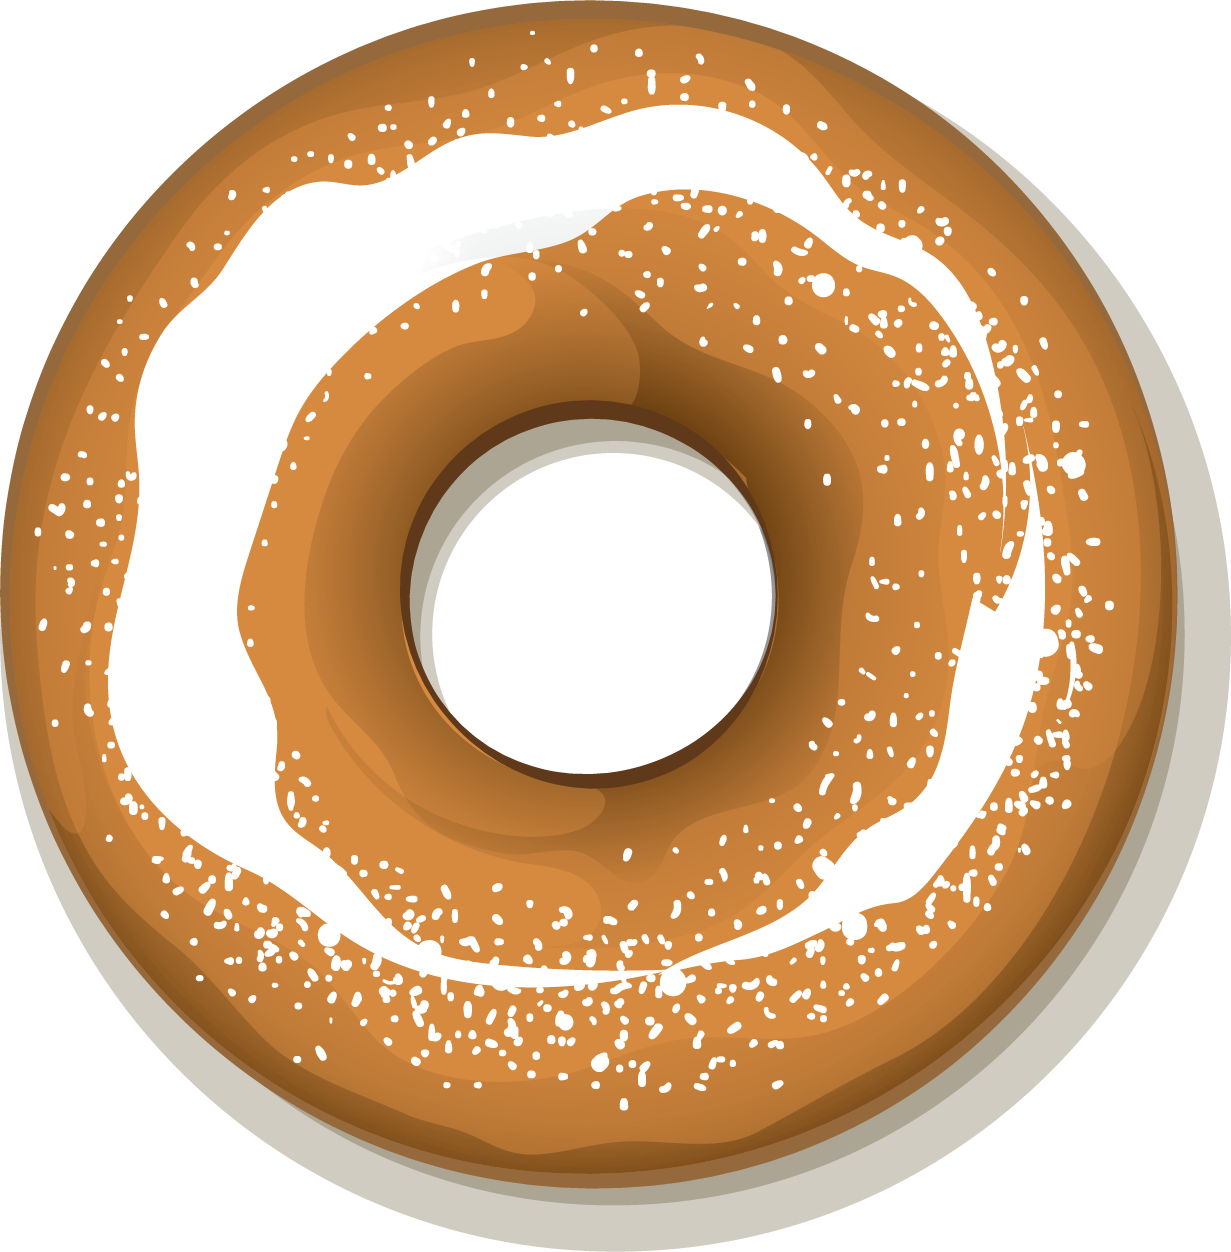 Download free stock icon. Doughnut clipart cinnamon donut